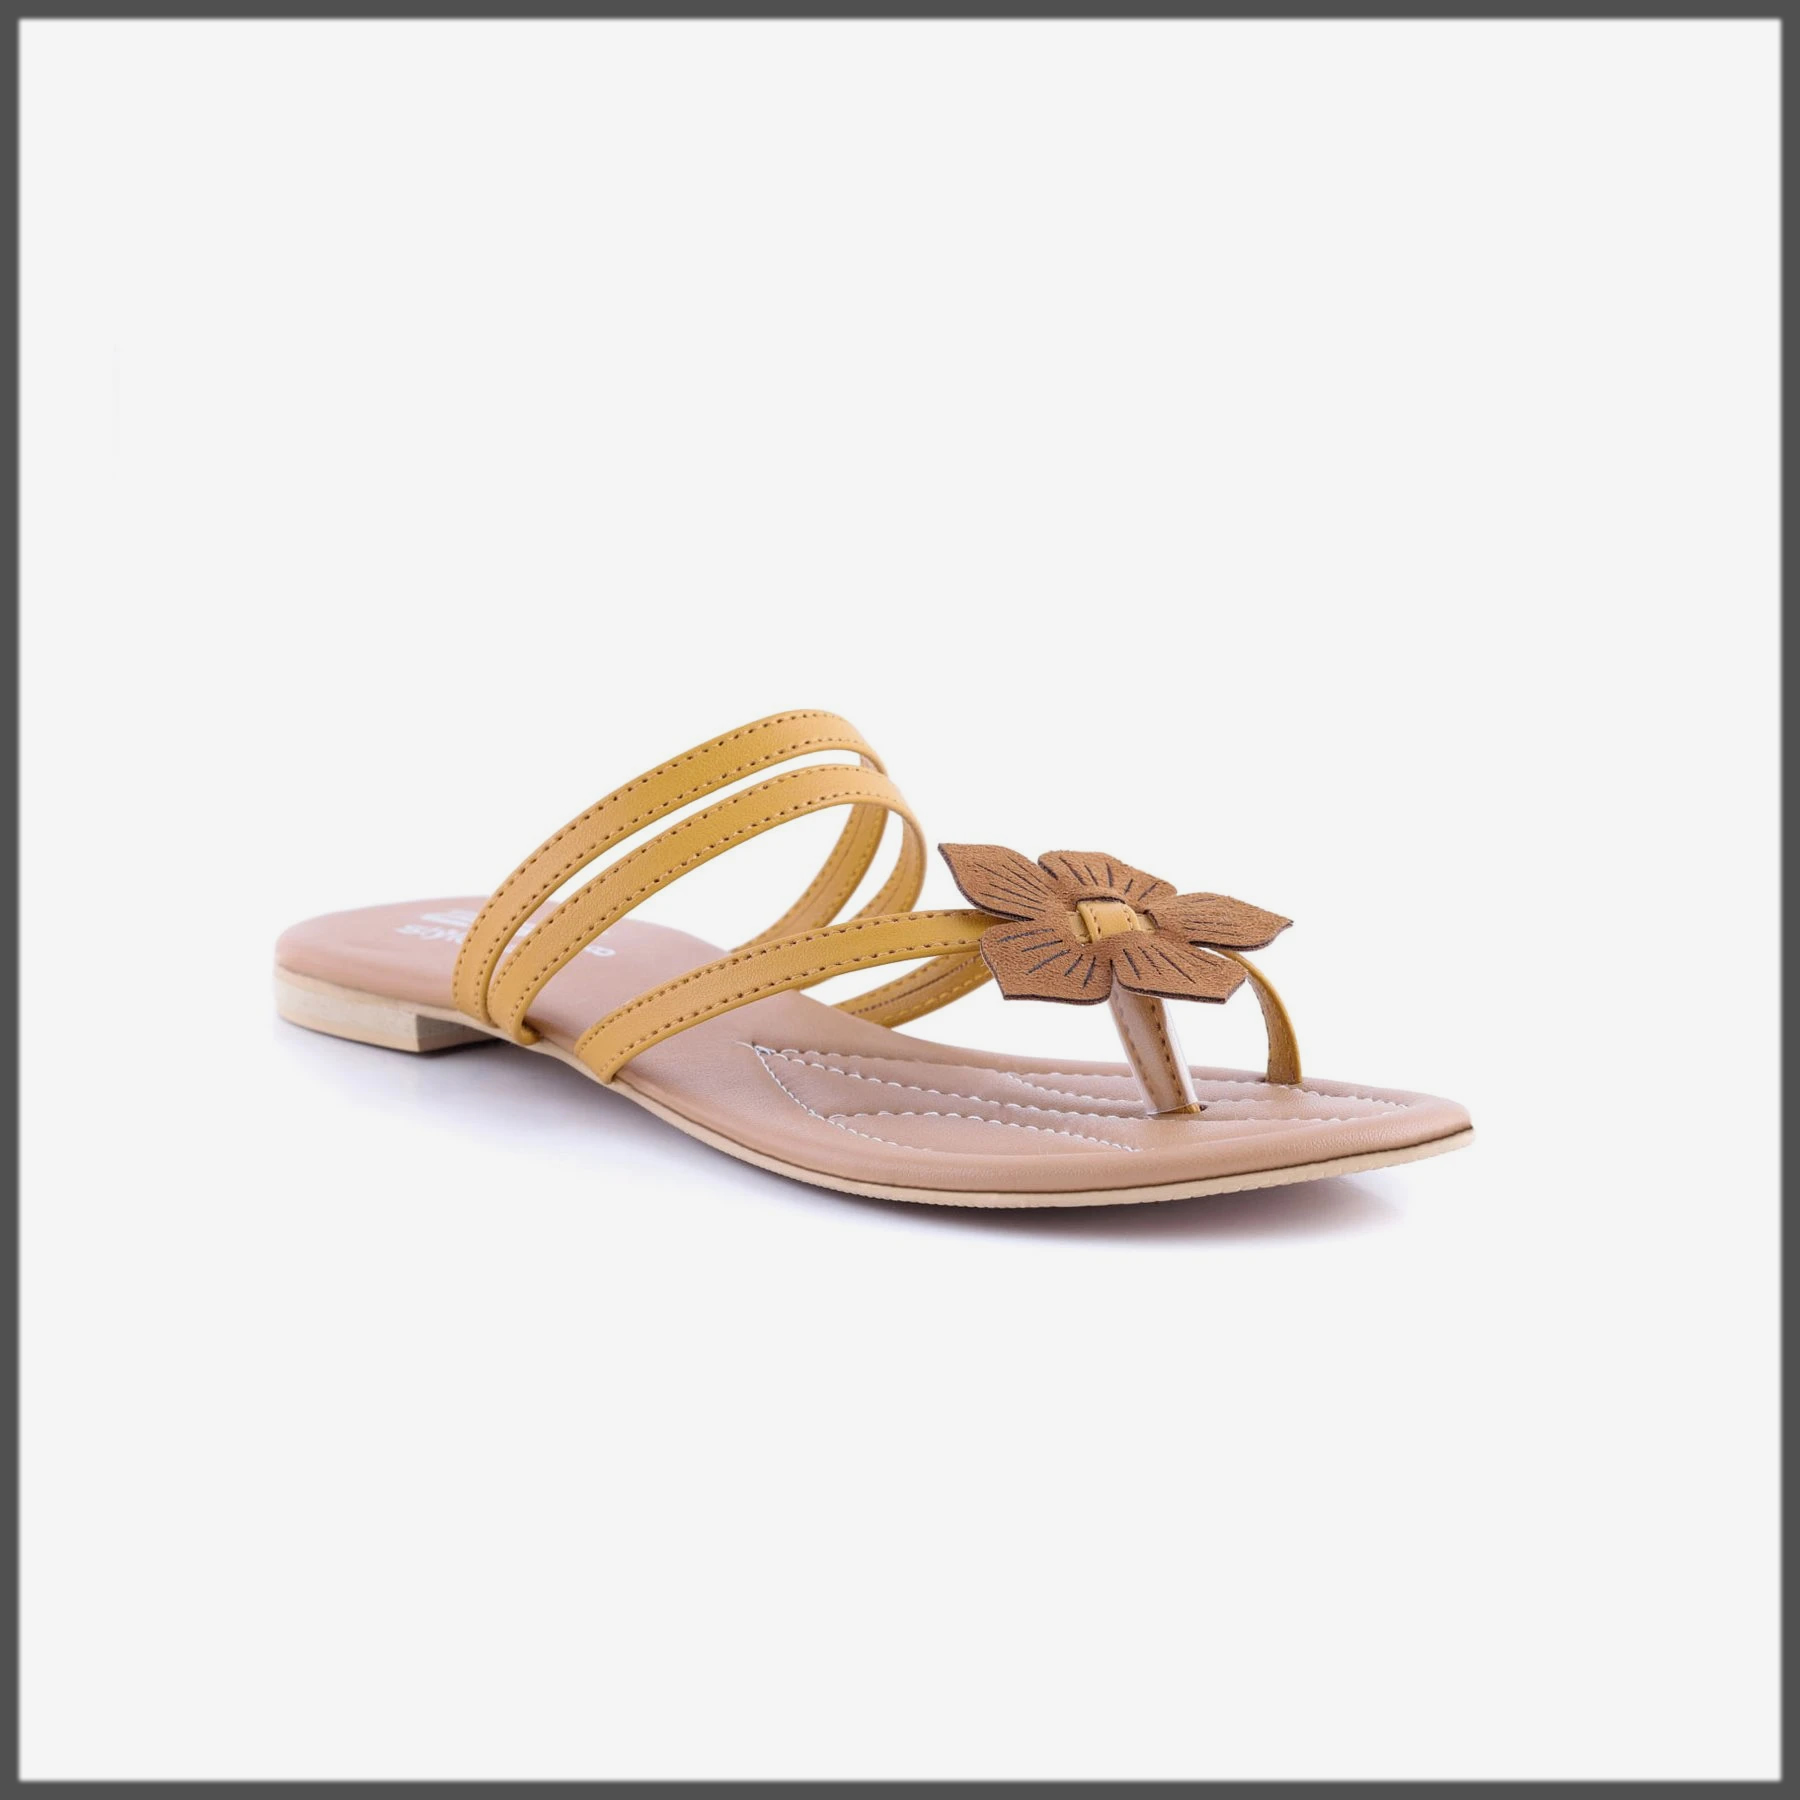 yellow summer chappal for women